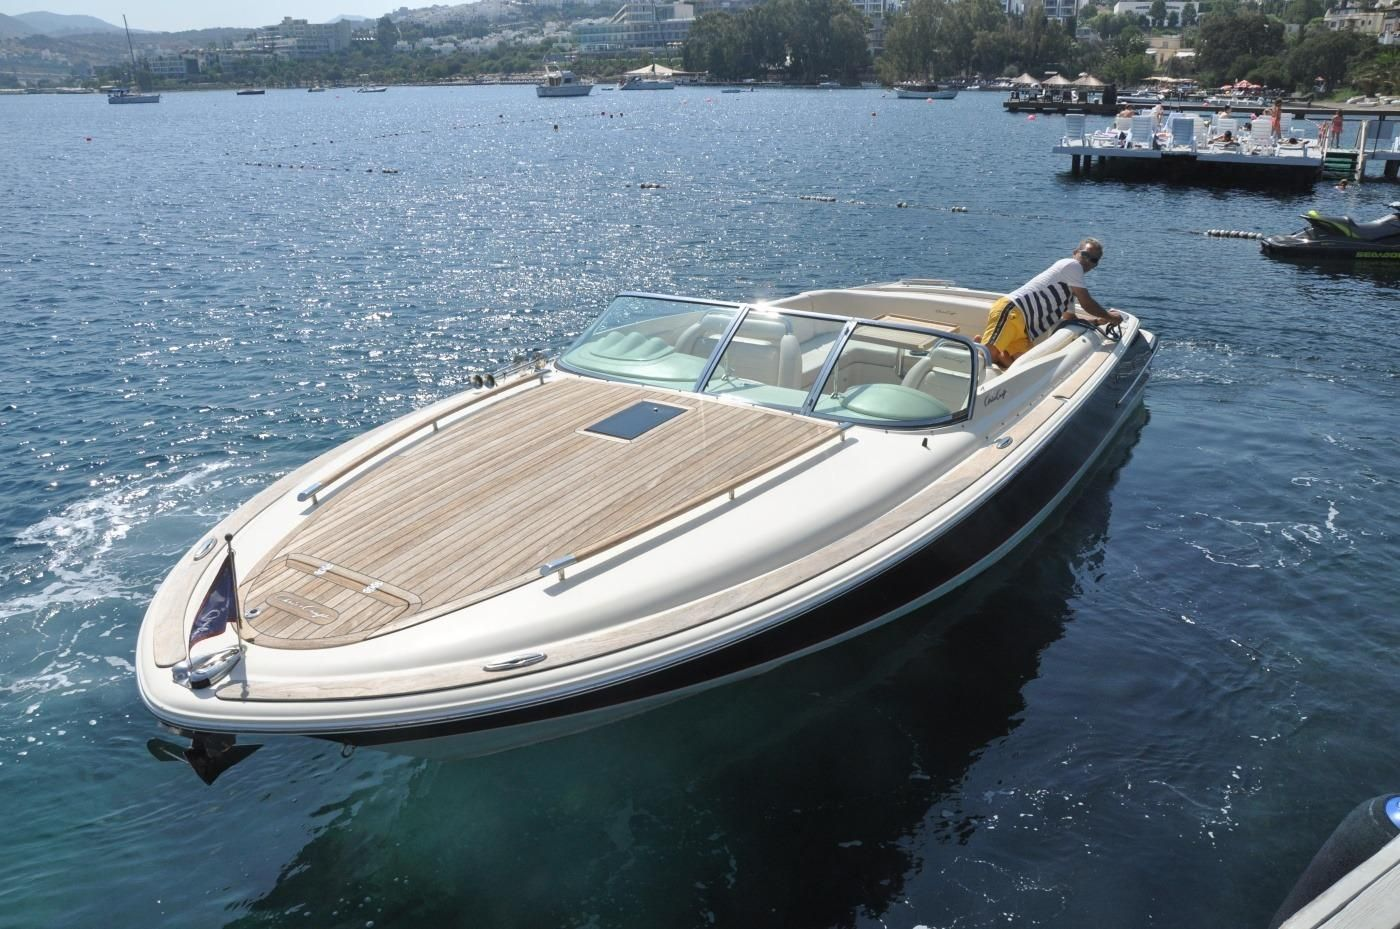 2011 Chris Craft Corsair 28 Power Boat For Sale Www